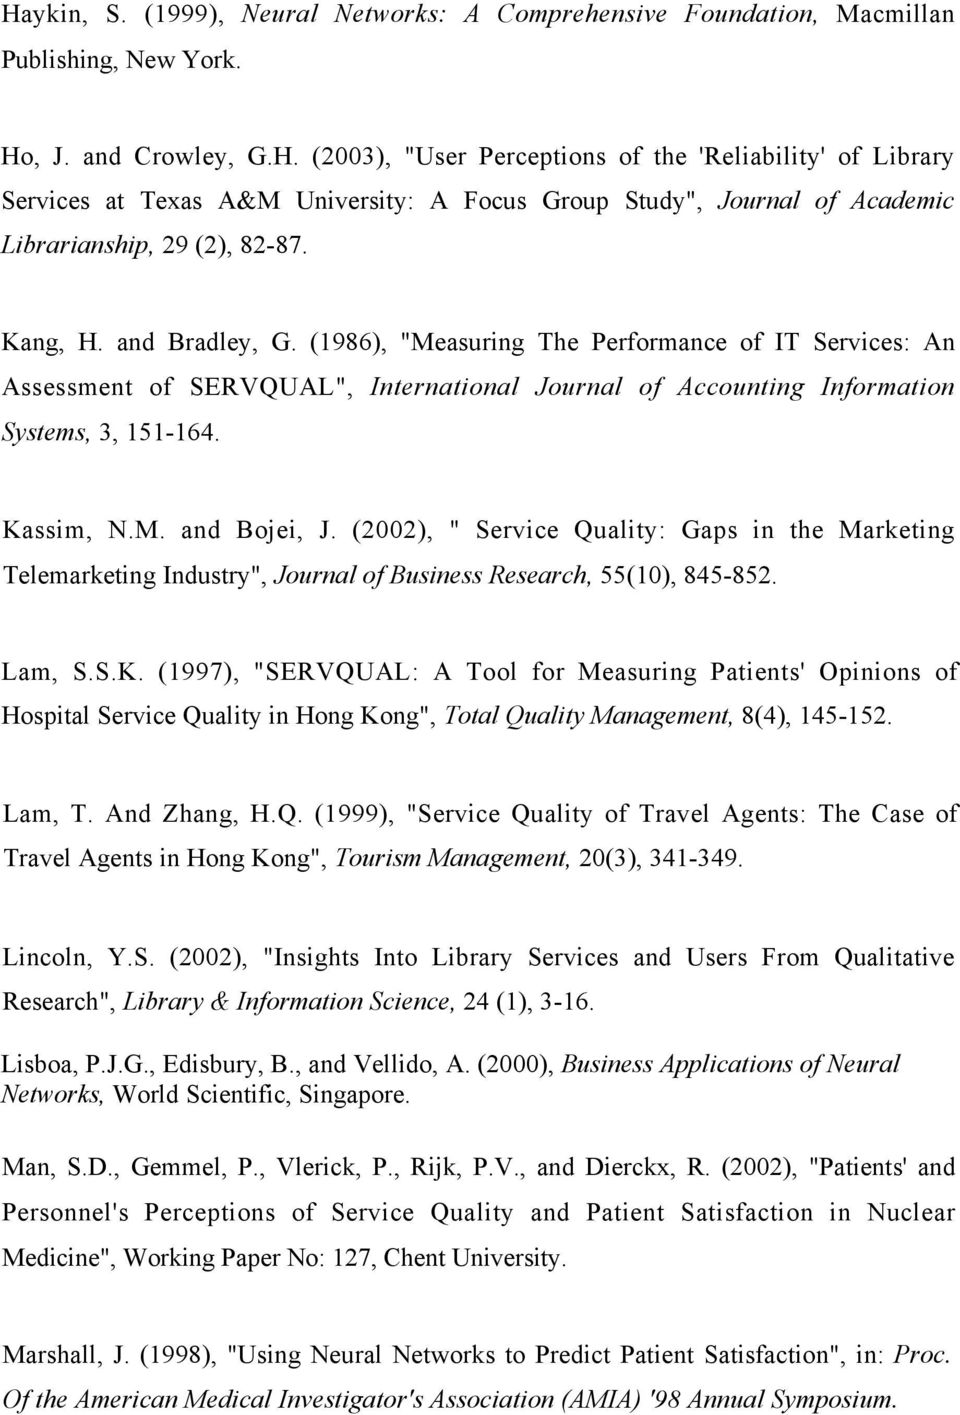 "(2002), "" Service Quality: Gaps in the Marketing Telemarketing Industry"", Journal of Business Research, 55(10), 845-852. Lam, S.S.K."